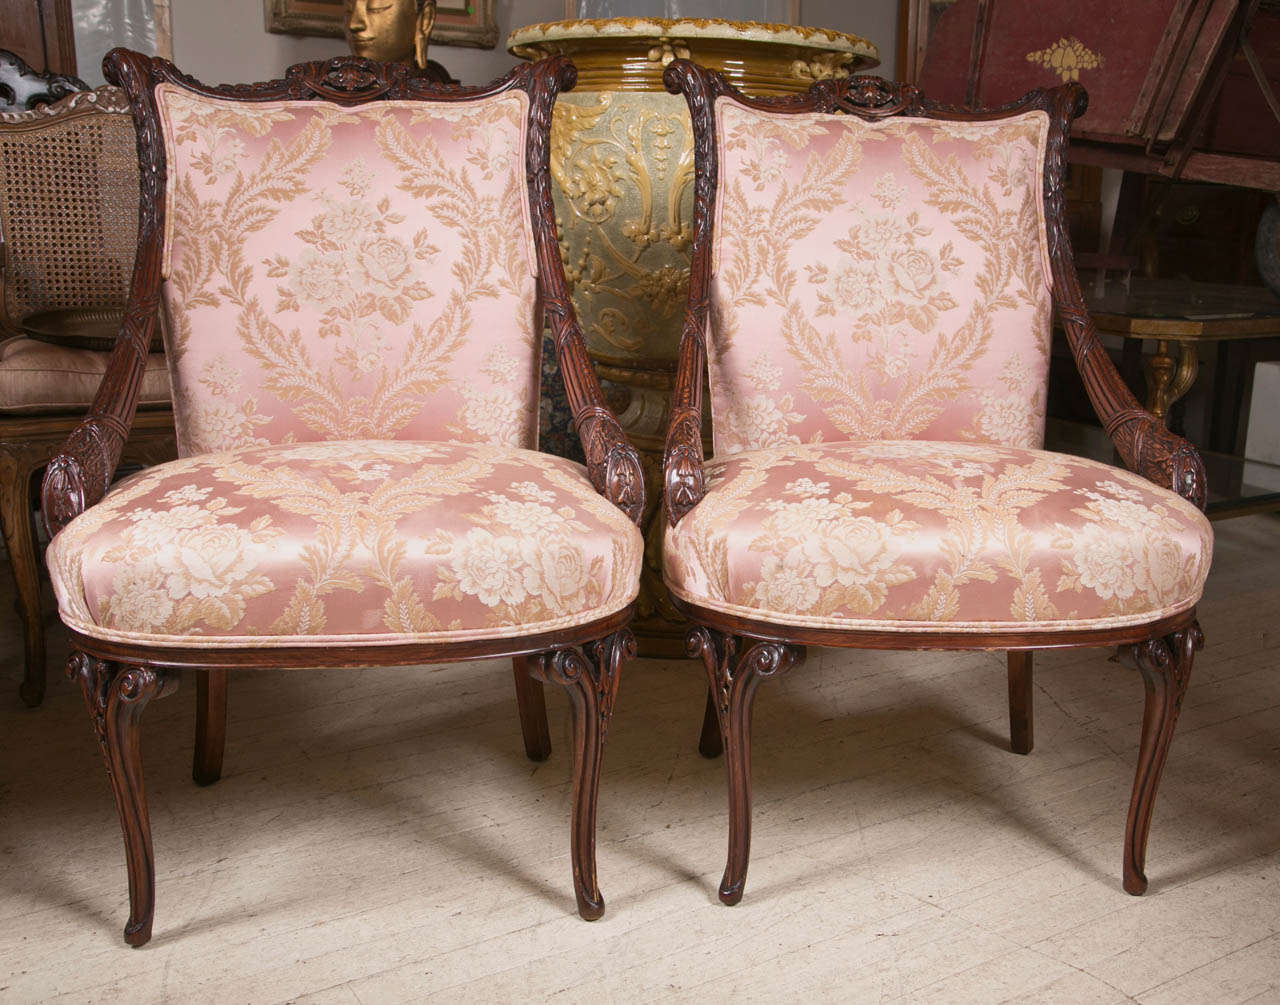 An interesting pair of mid century arm chairs  in hand carved mahogany.